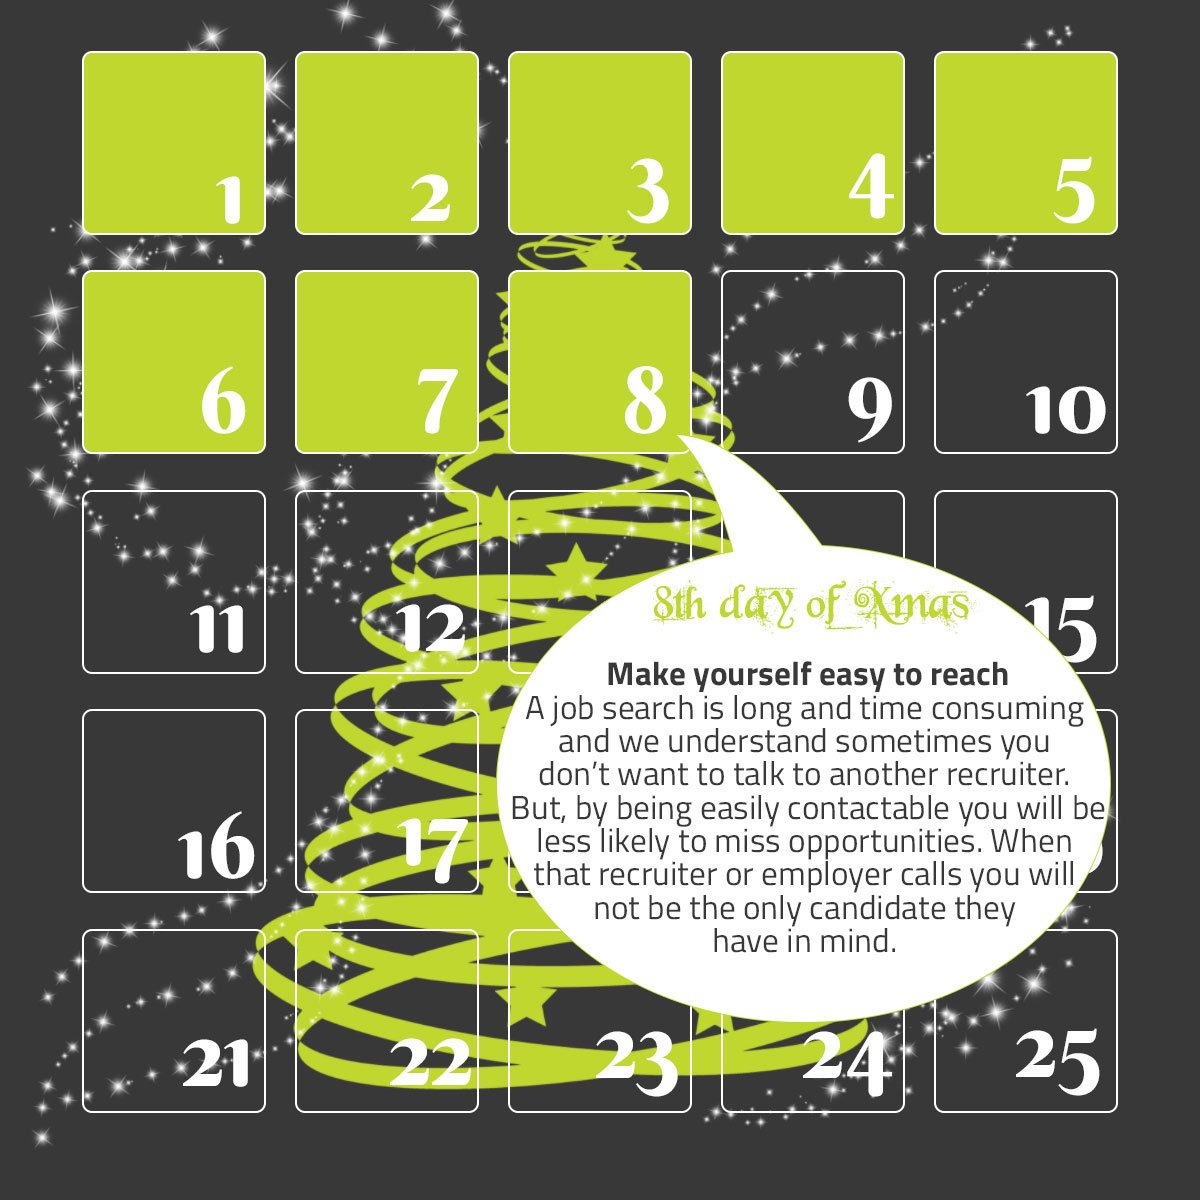 a calendar and a quote reminder about making yourself easy to reach in case of winning facebook sweepstakes